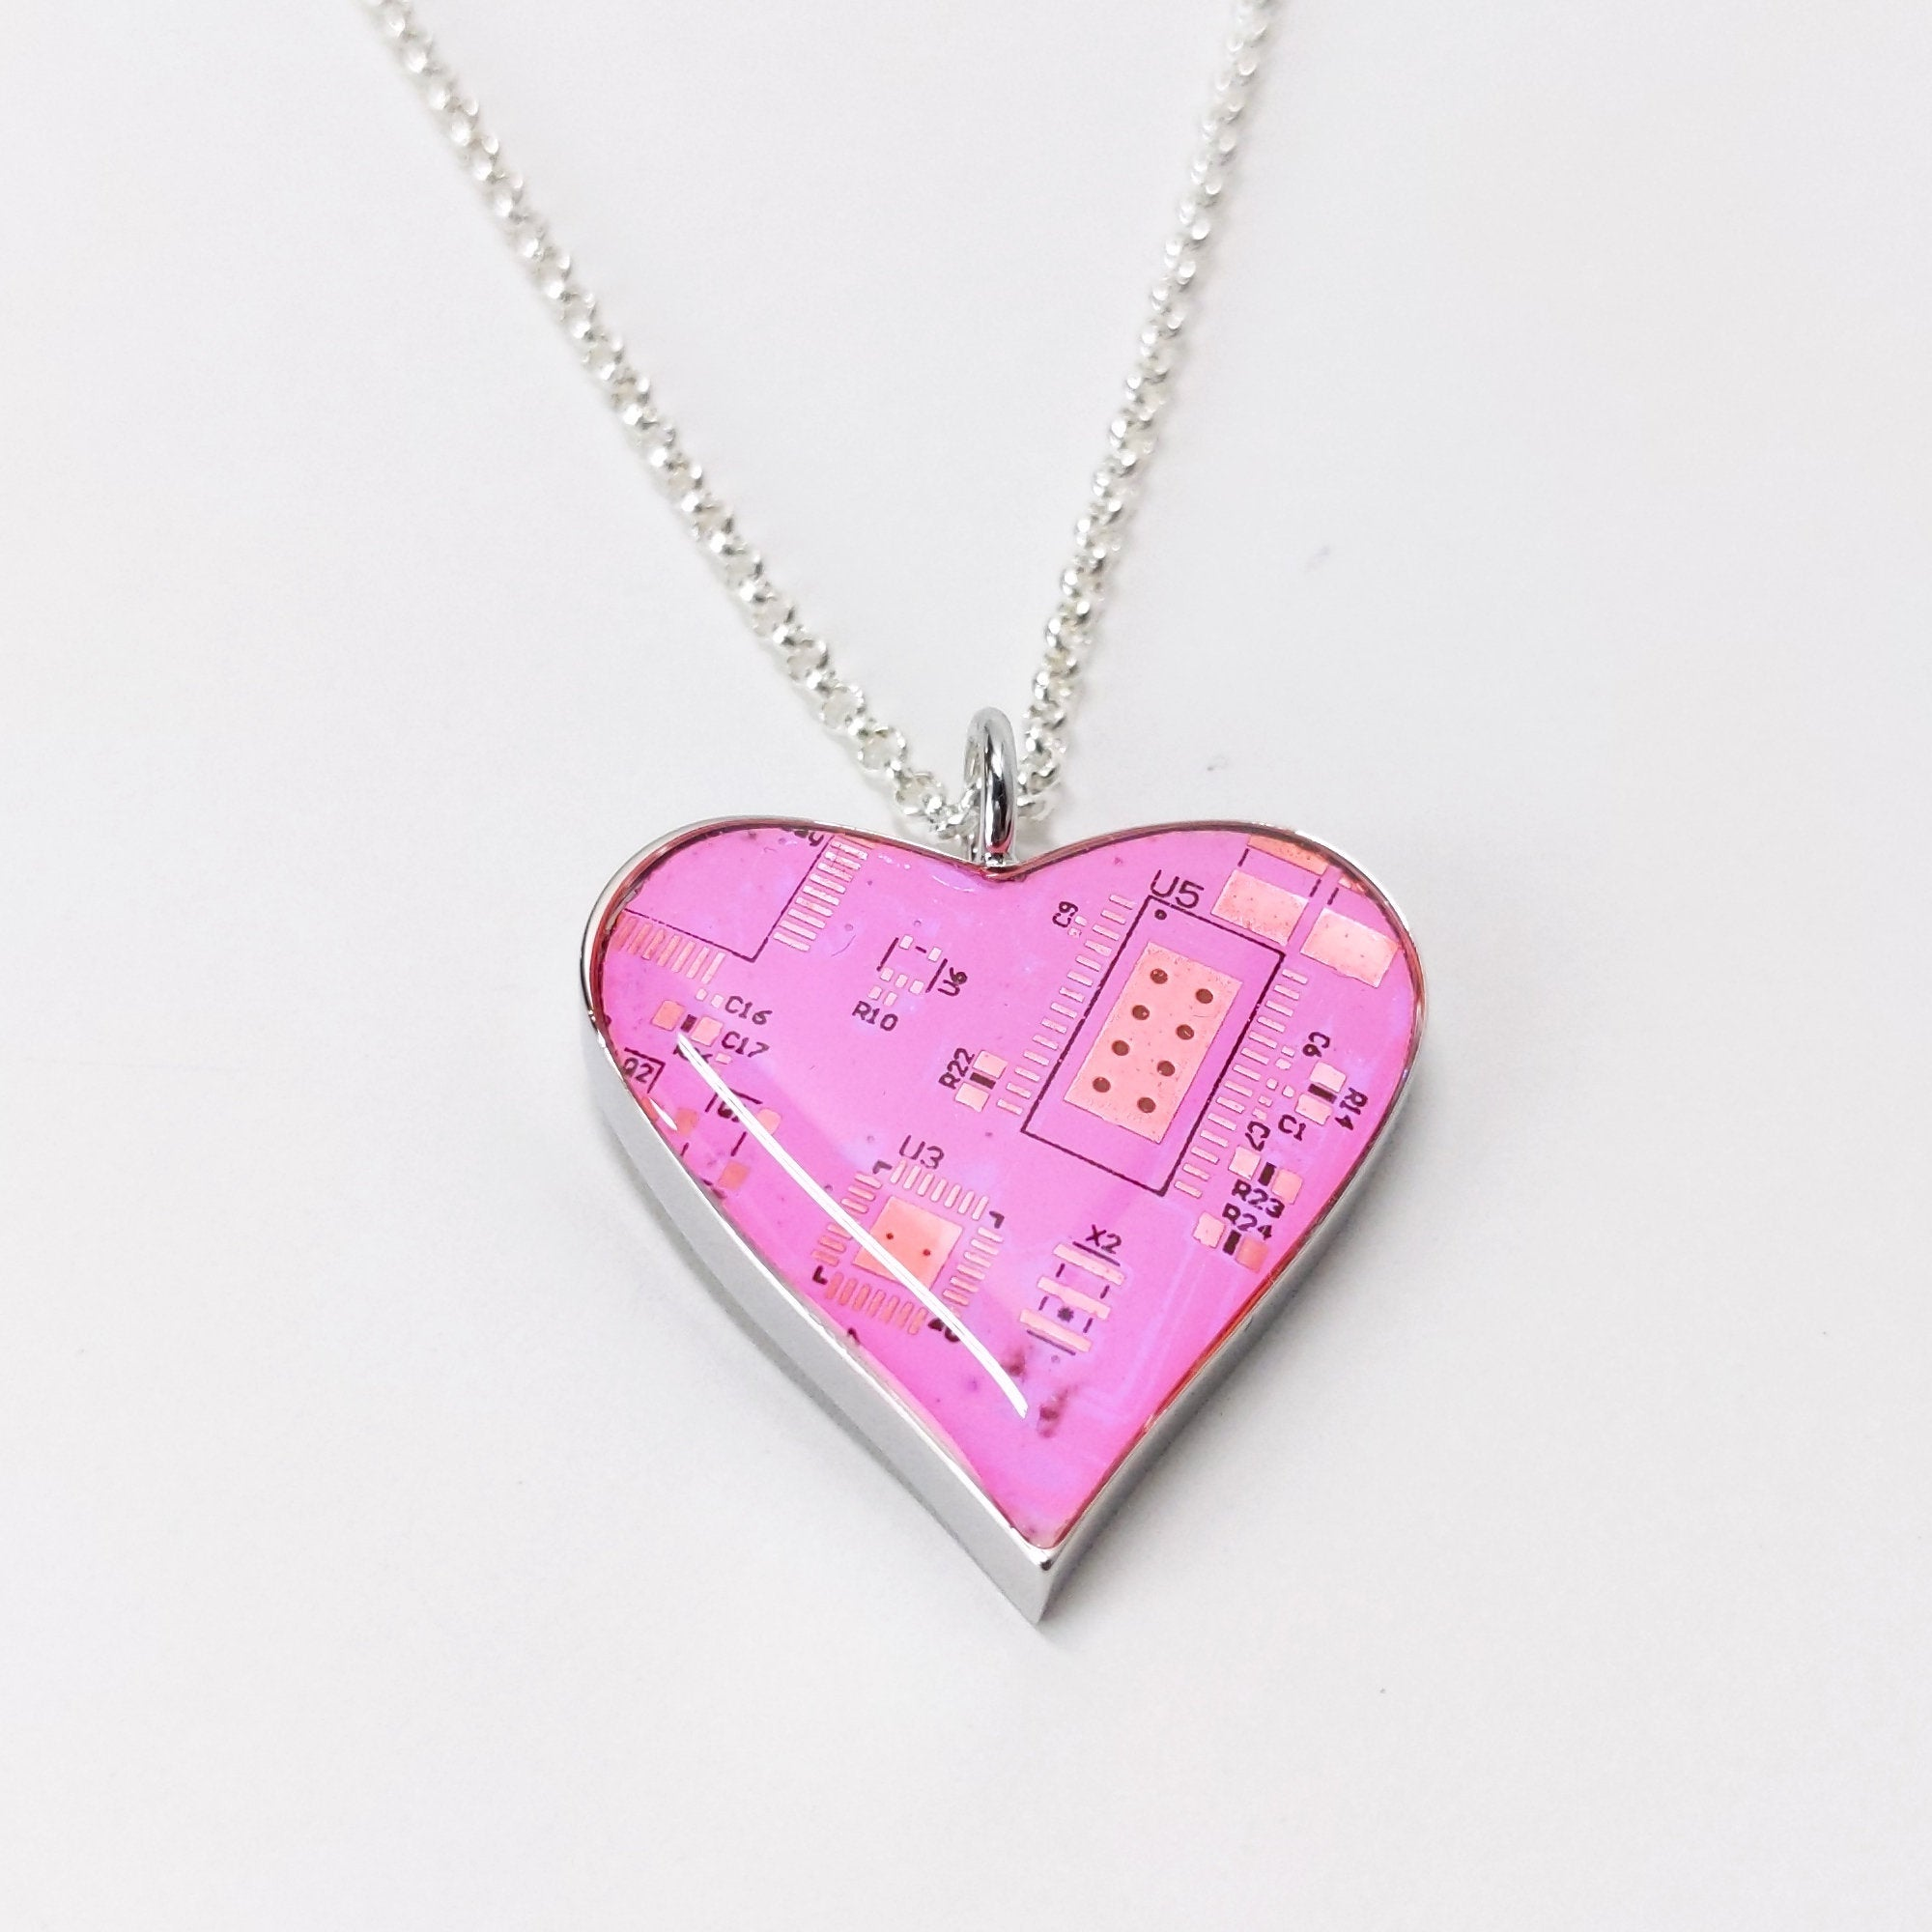 Pink Heart Pendant with Silver Chain - TechWears Ltd